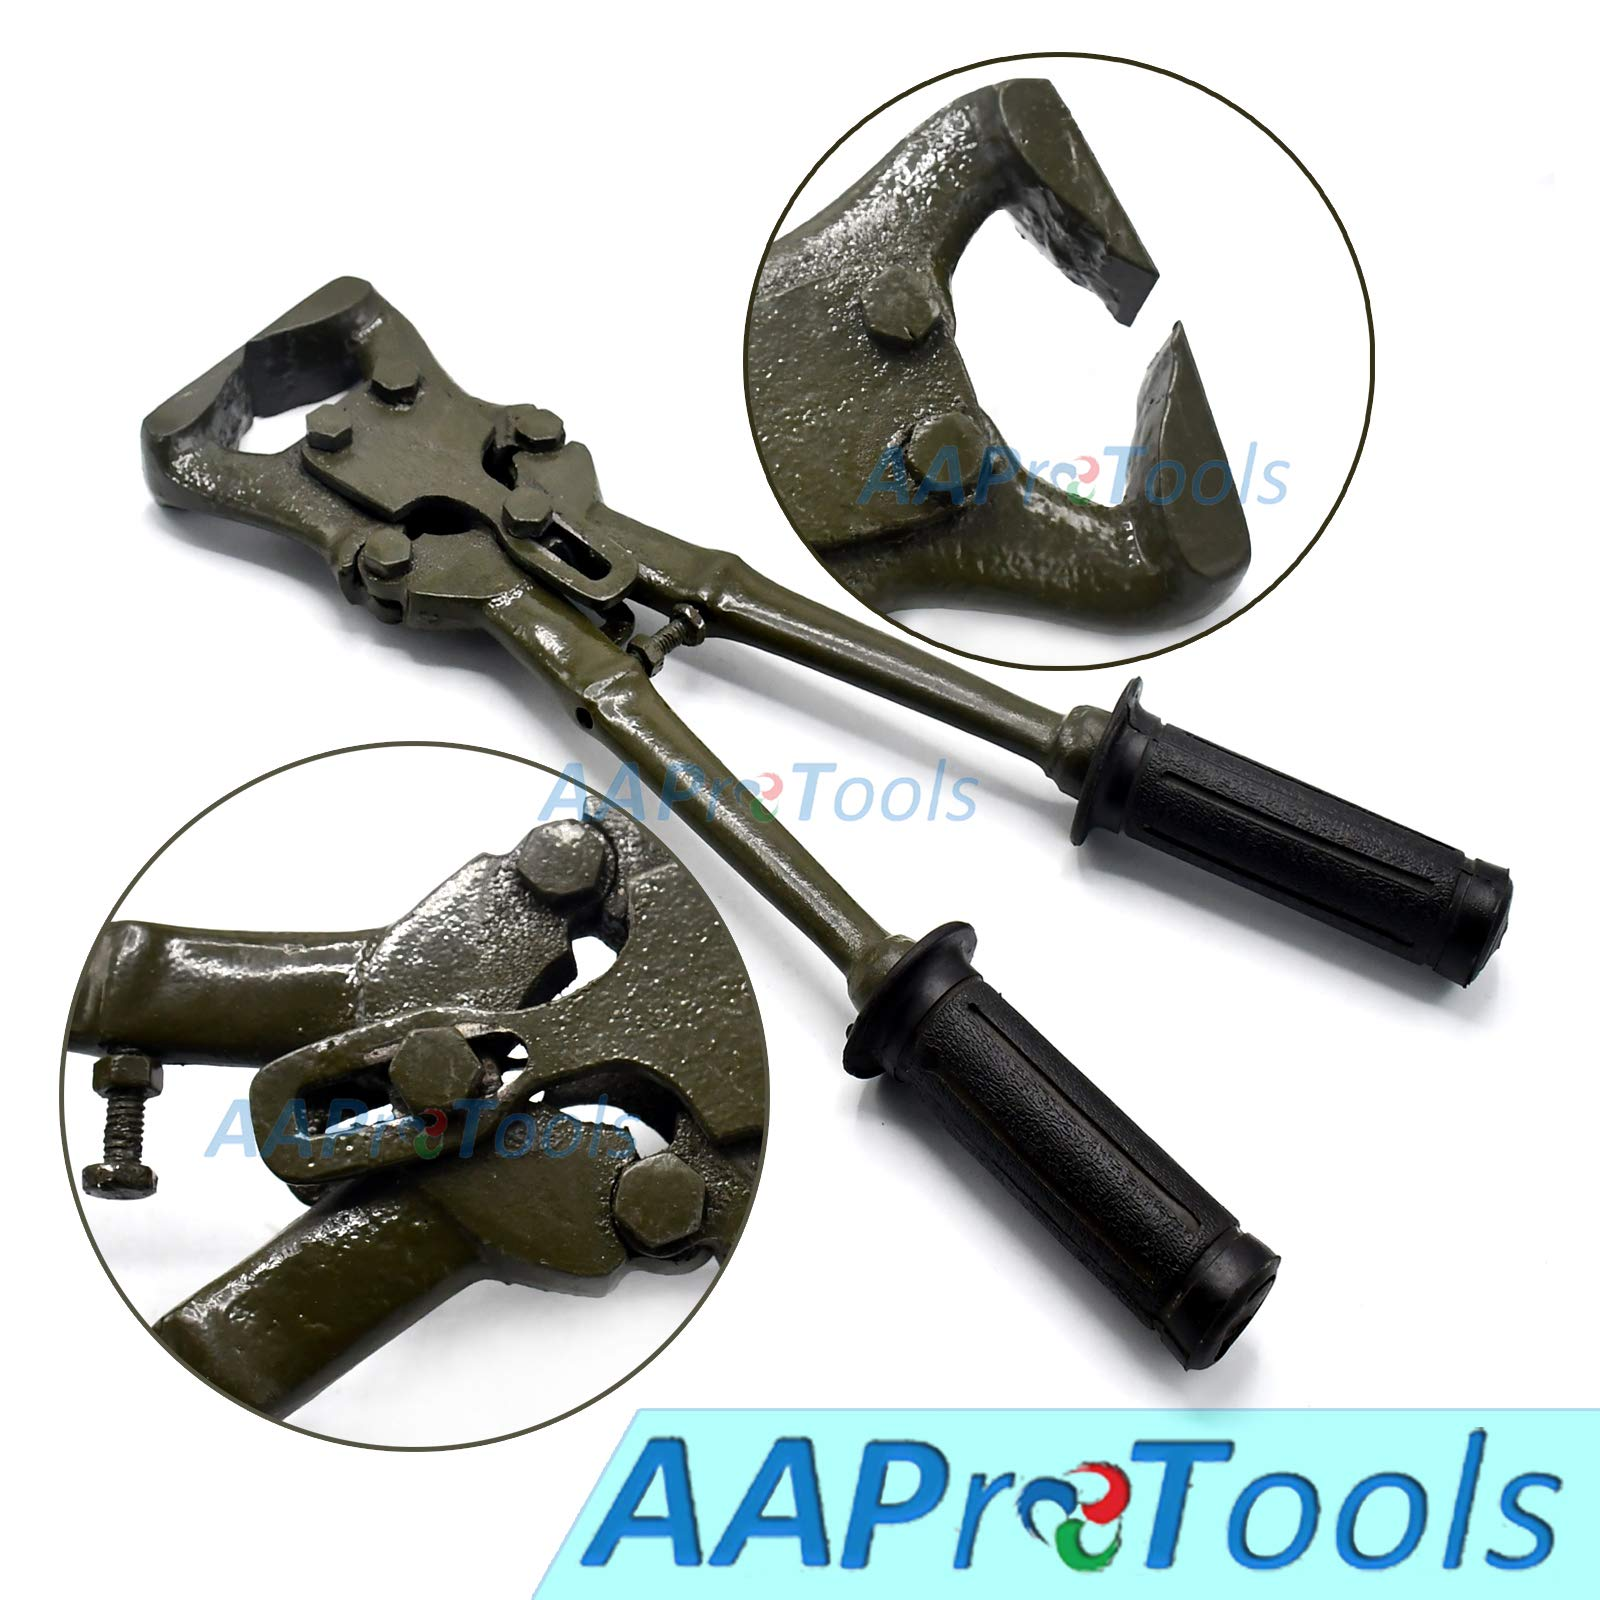 AAProTools Compound Action Hoof Nippers 16'' Heavy Duty Livestock Veterinary